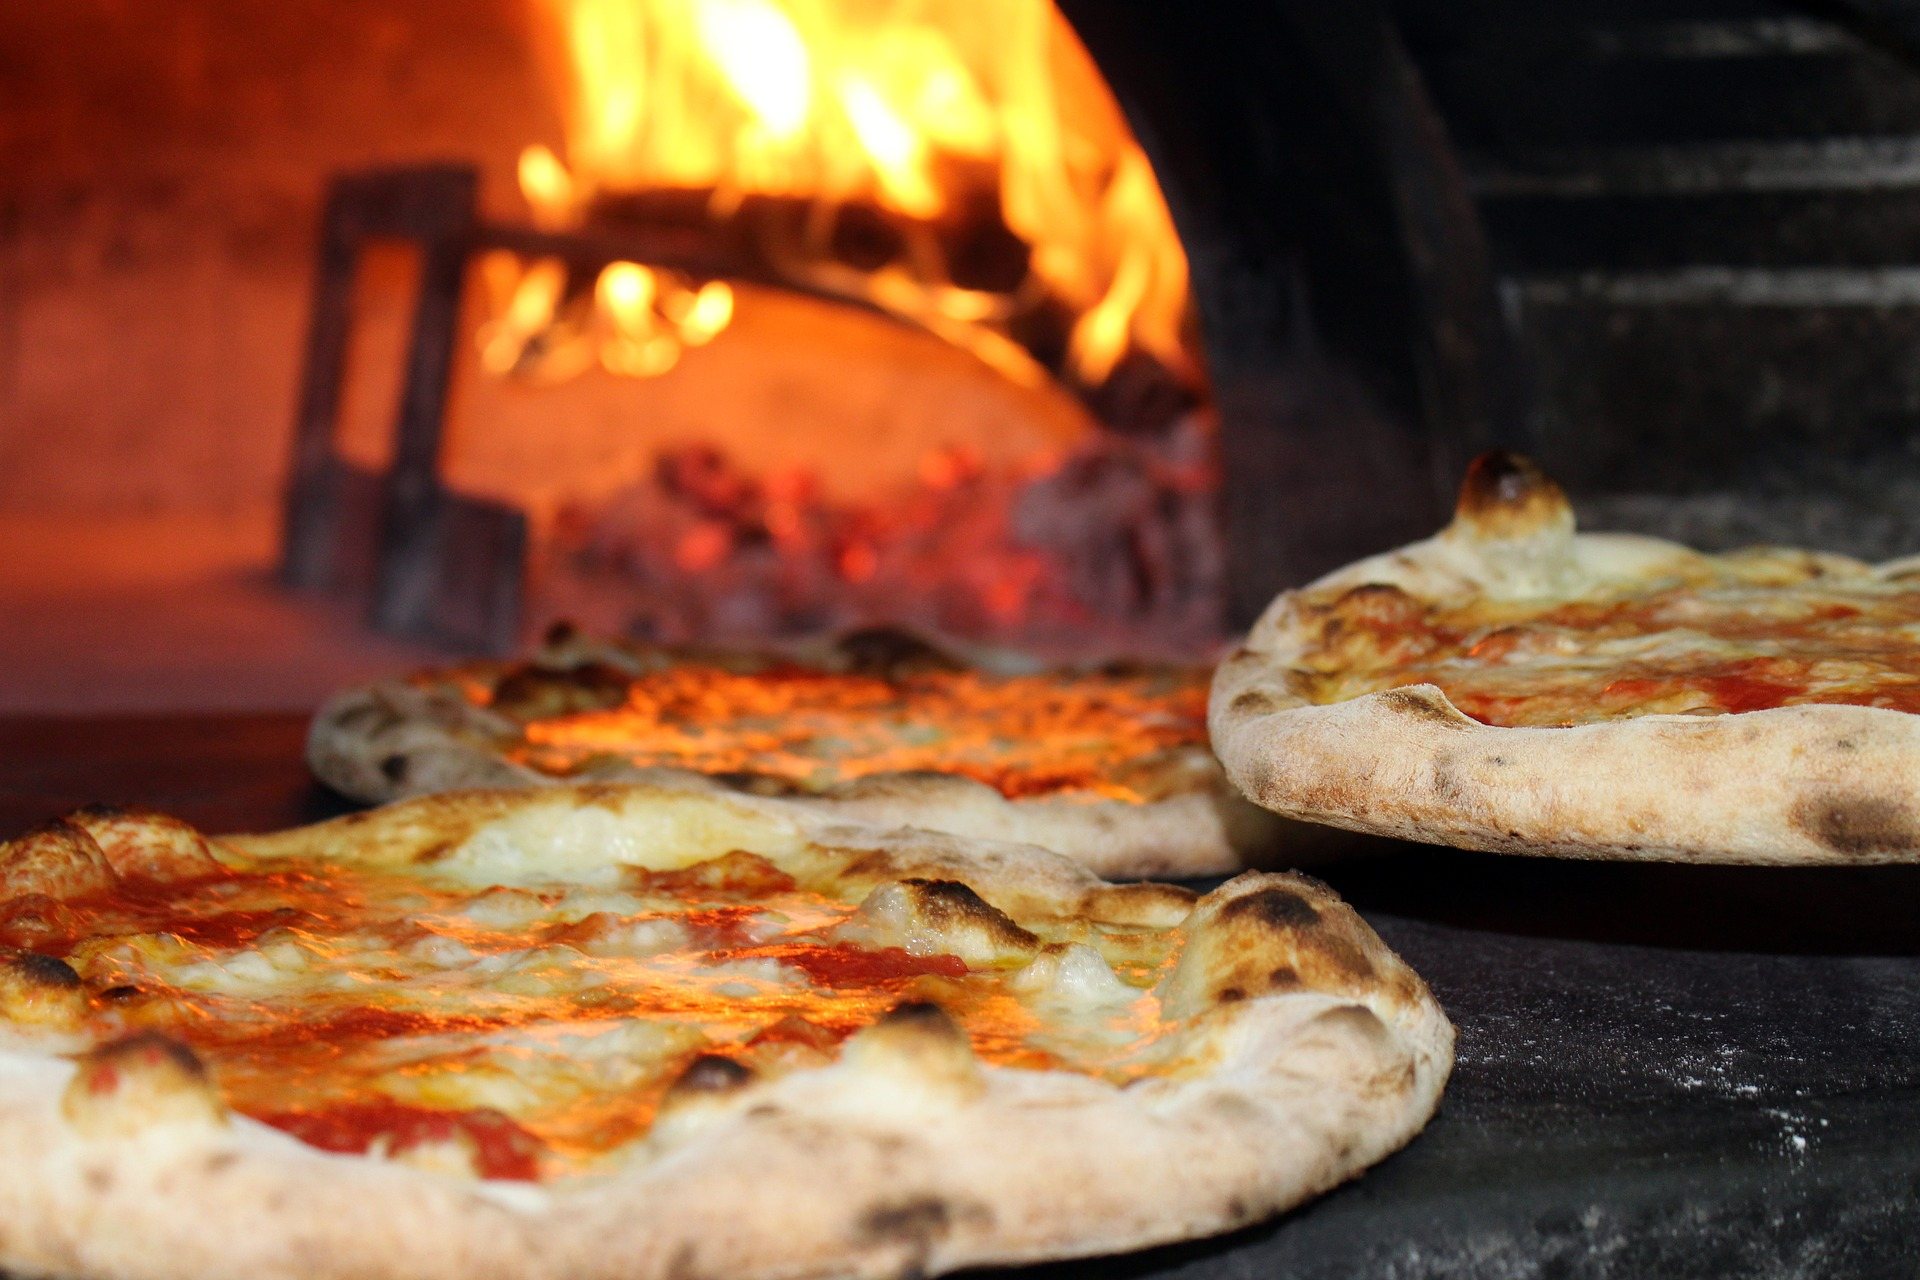 Three pizzas in a wood burn oven